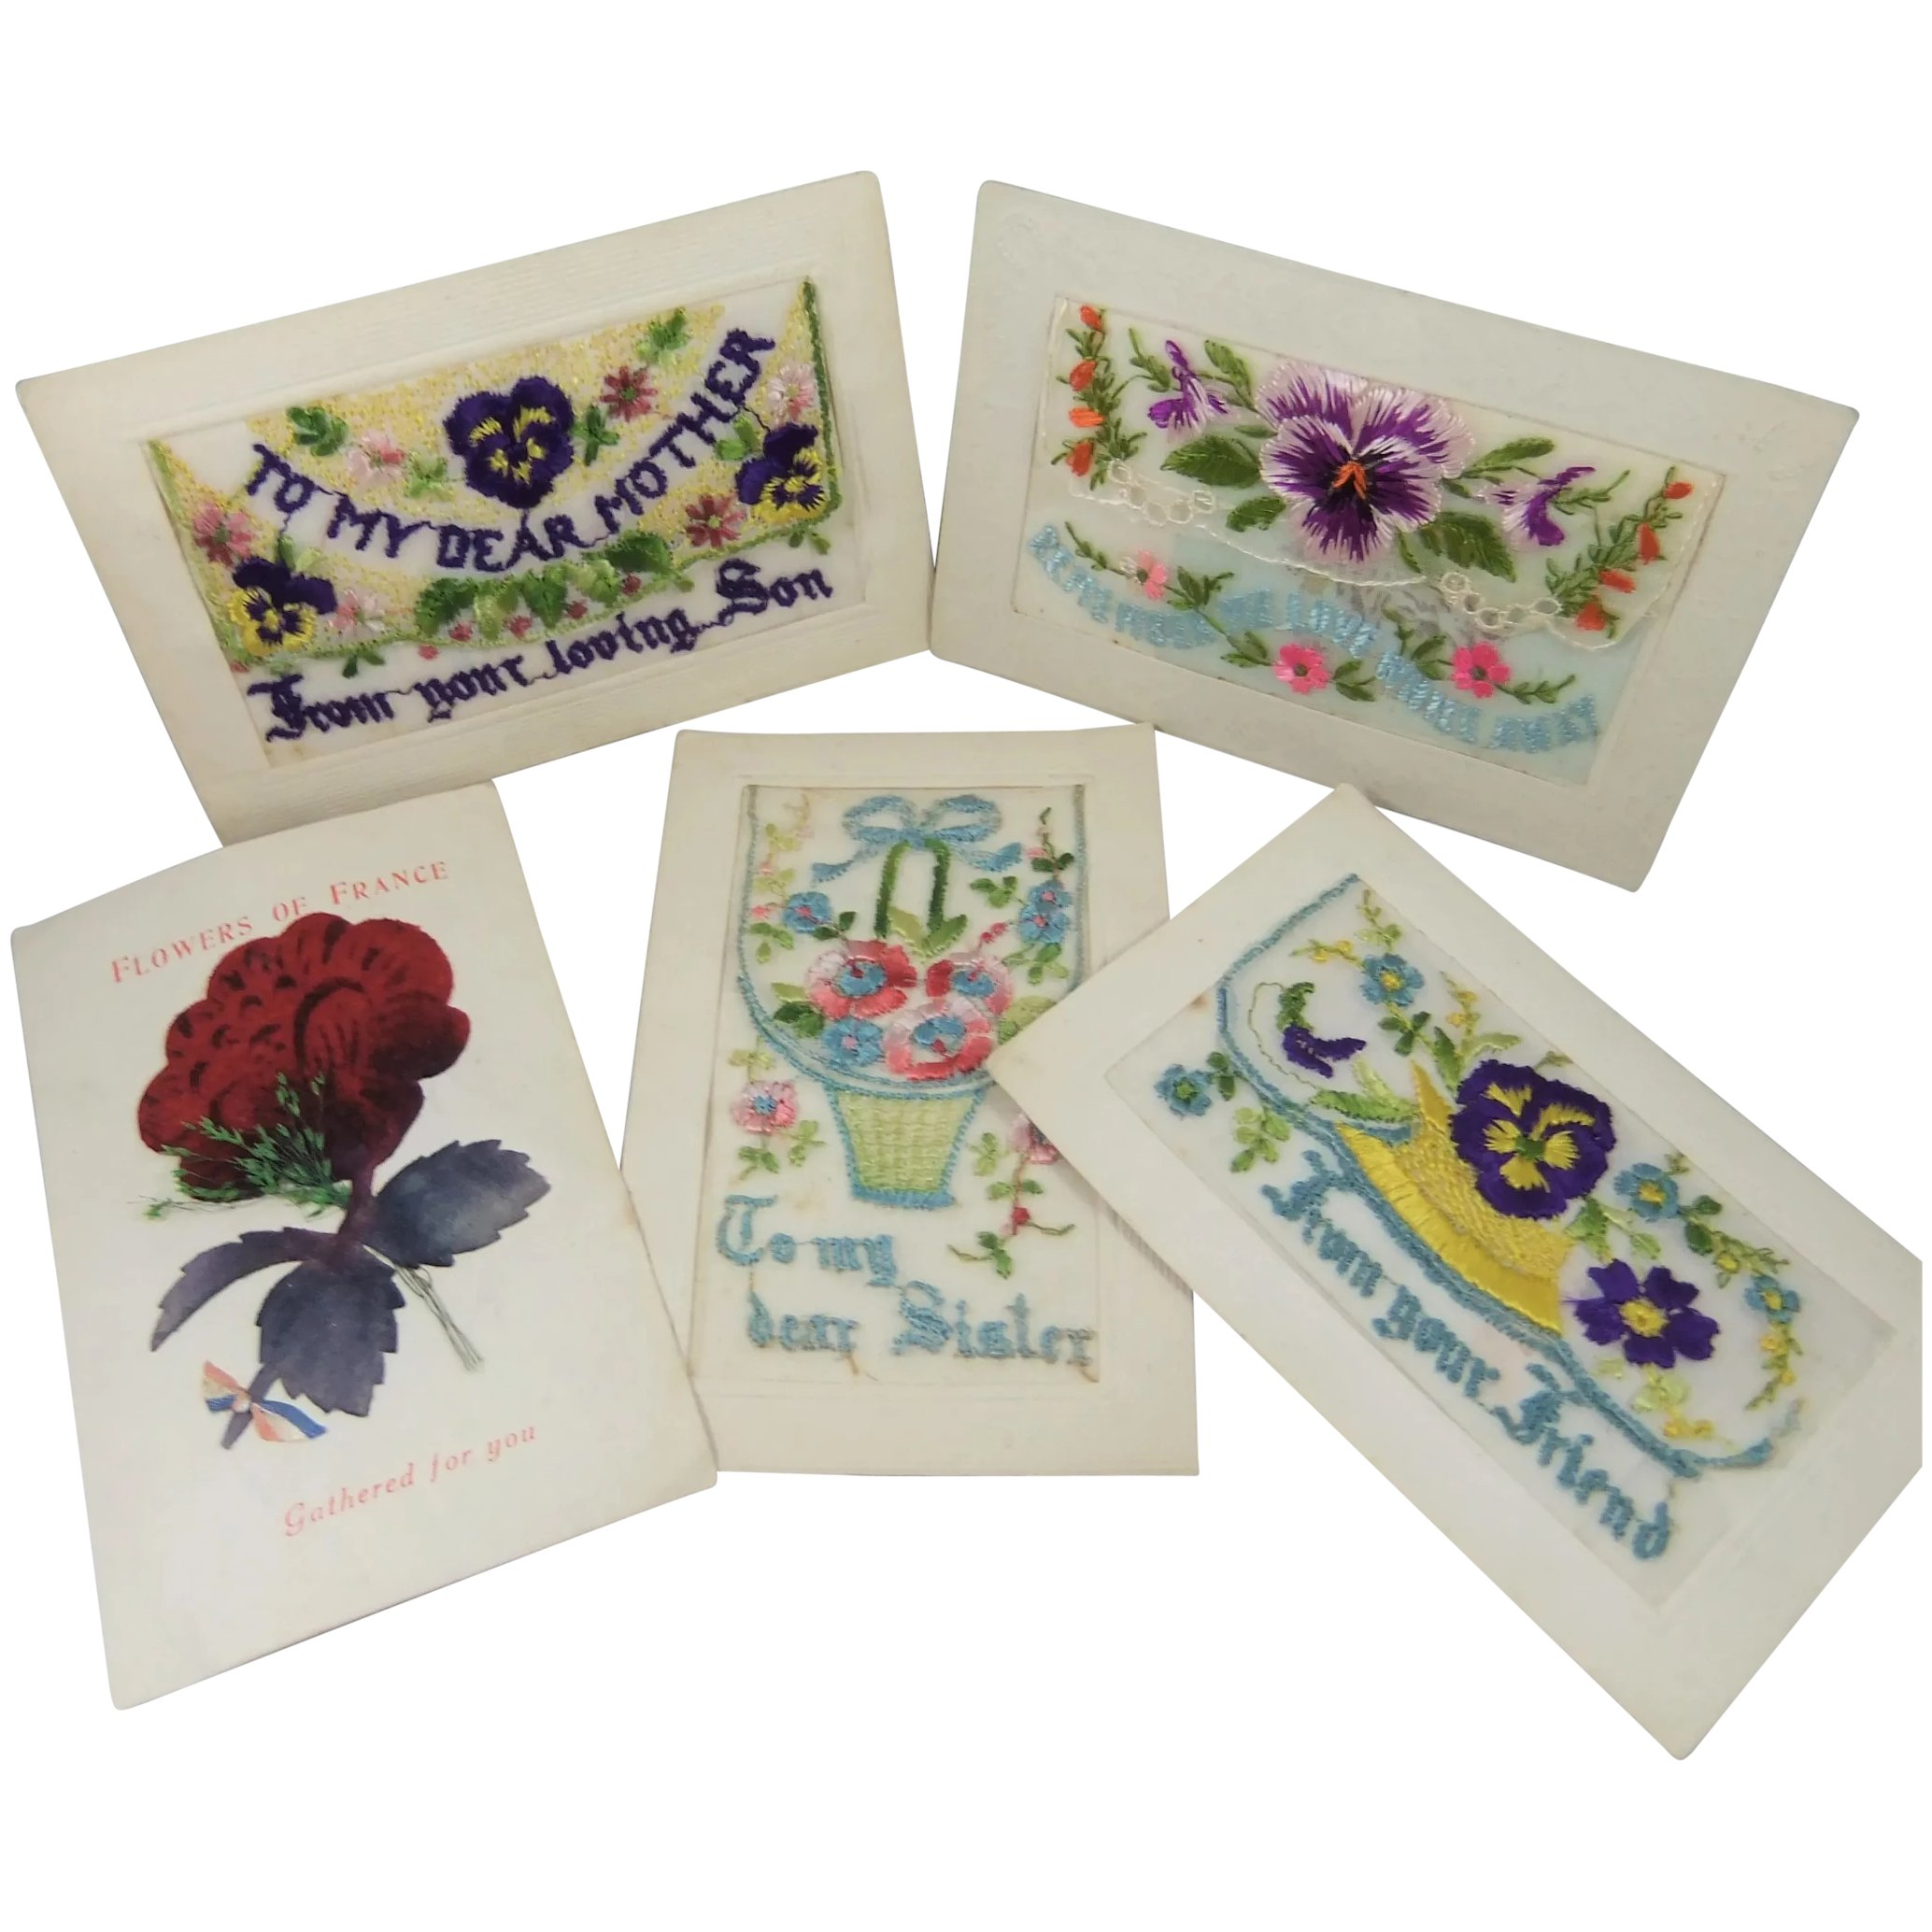 5 X Wwi Silk Embroidered Fabric Postcards 1914 To 1918 Edwina S Friends Ruby Lane